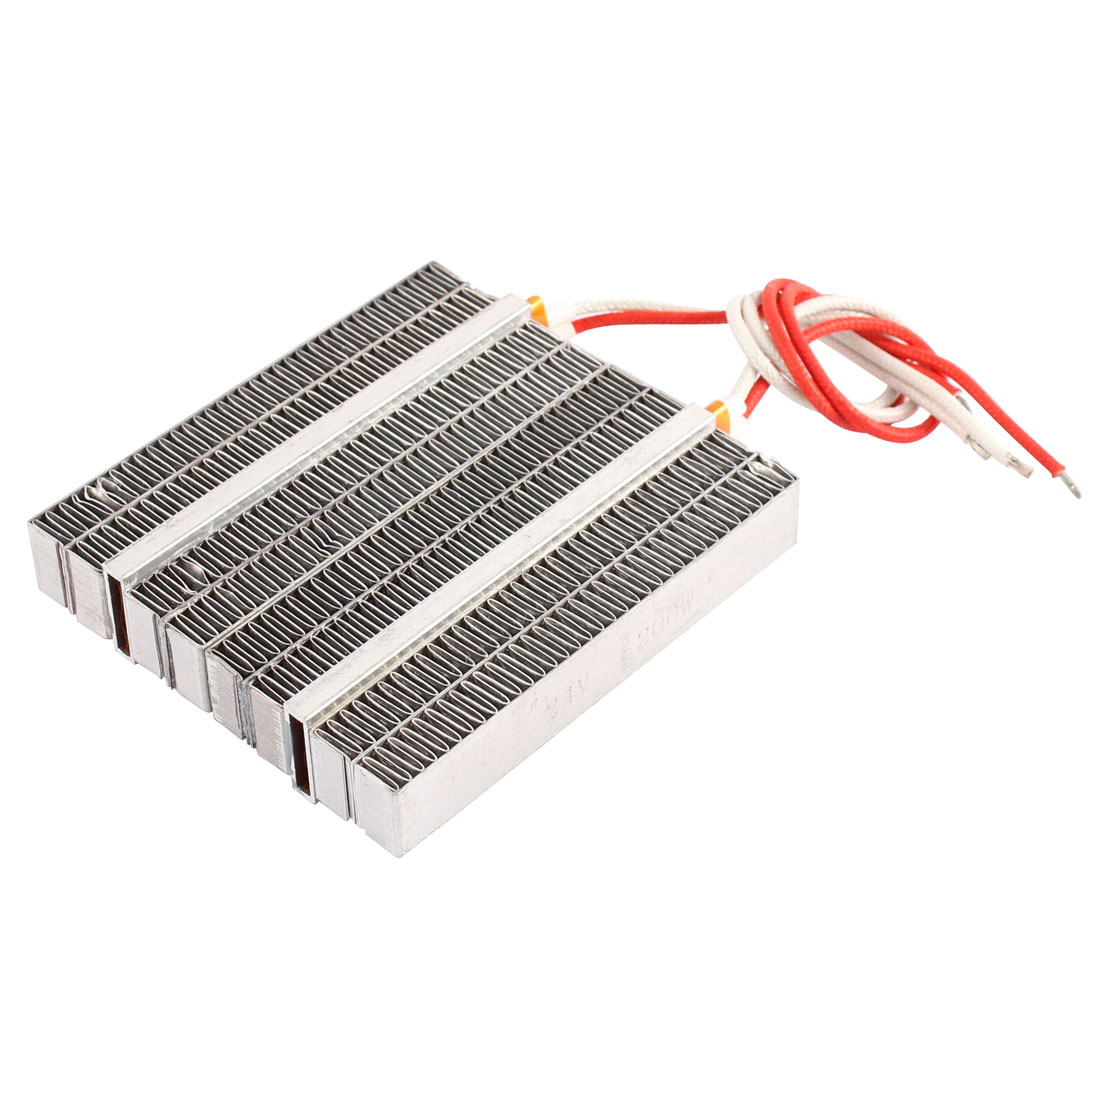 24V 500W PTC Heating Element Big Power Plate for Auto Car Silver Tone